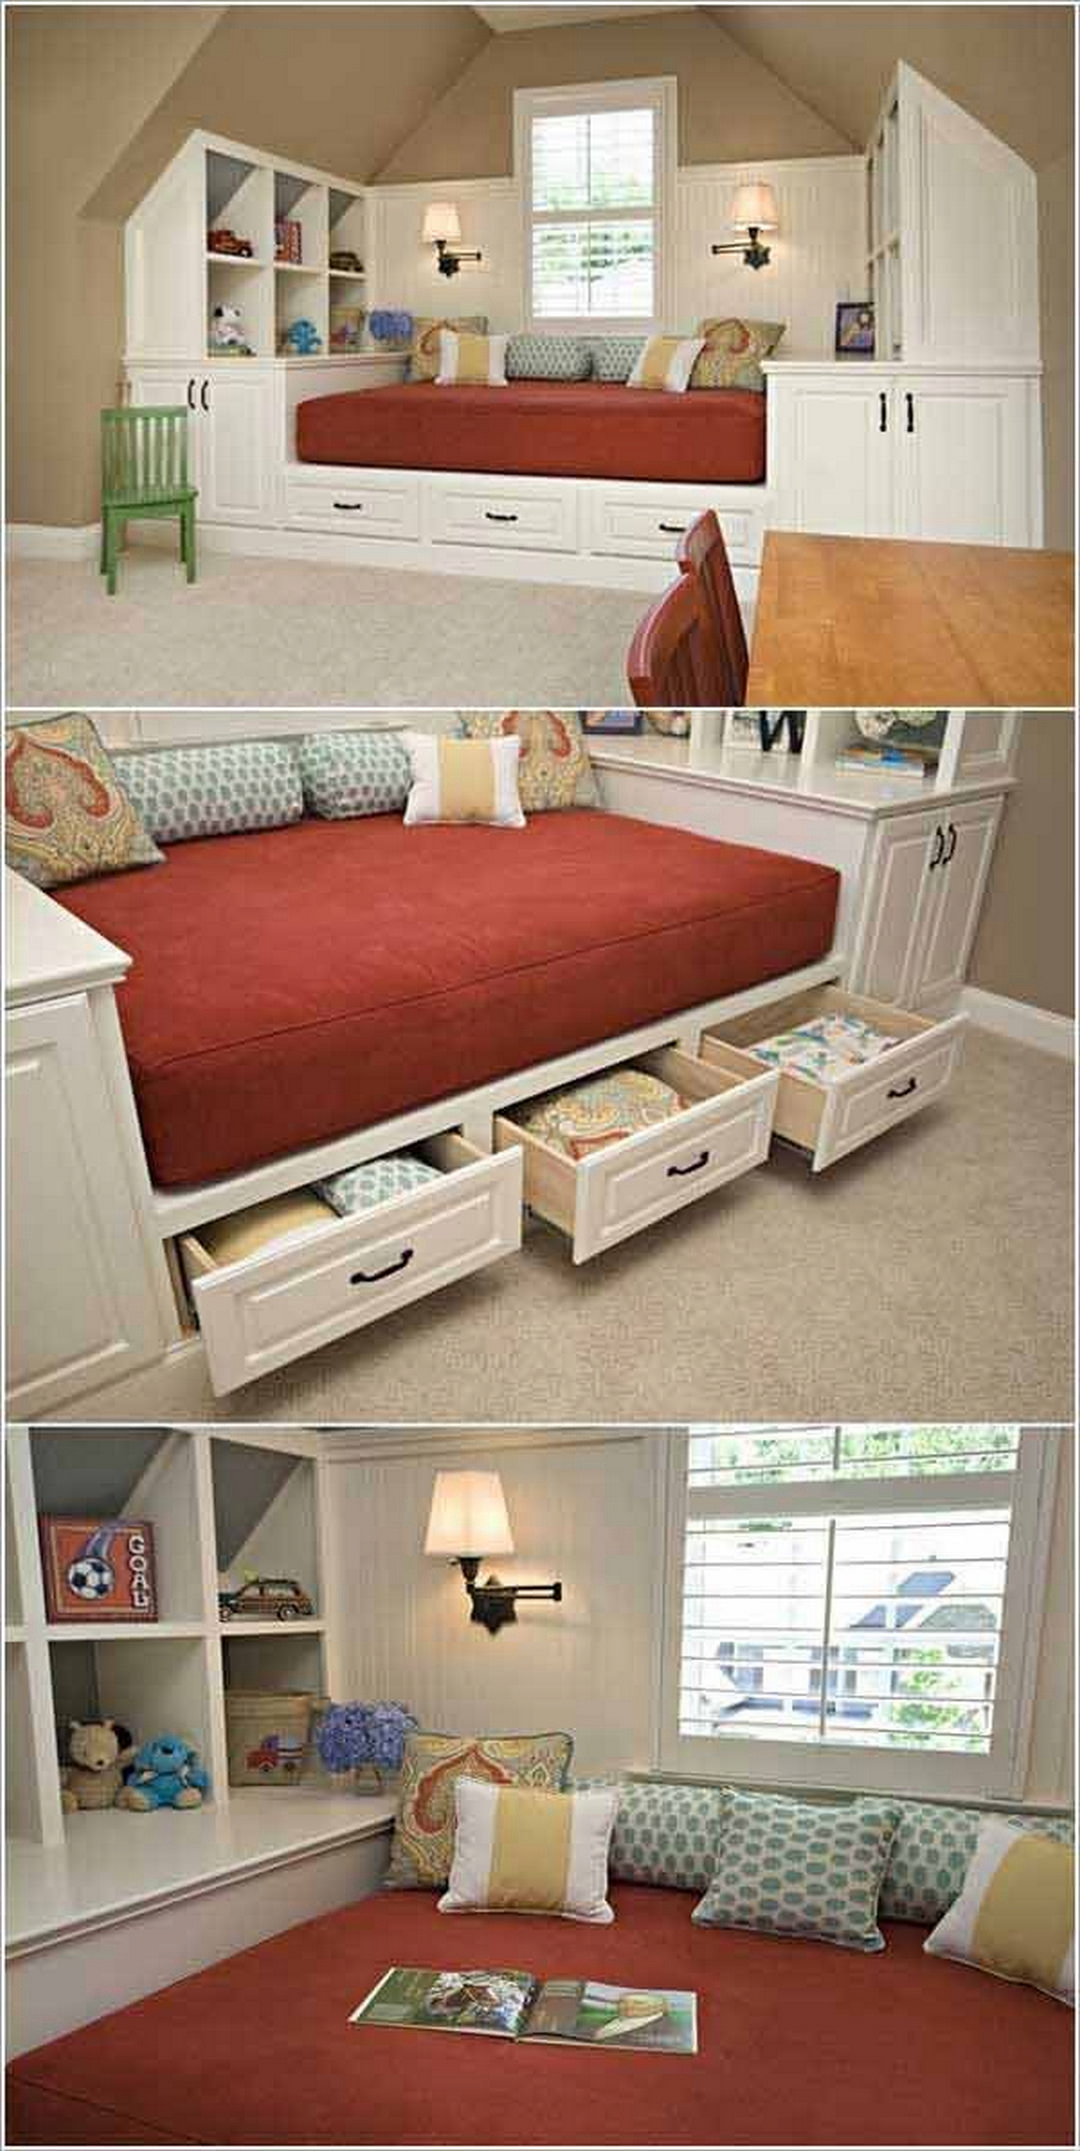 10 Stunning DIY Bedroom Storage Ideas  Daybed with storage, Home